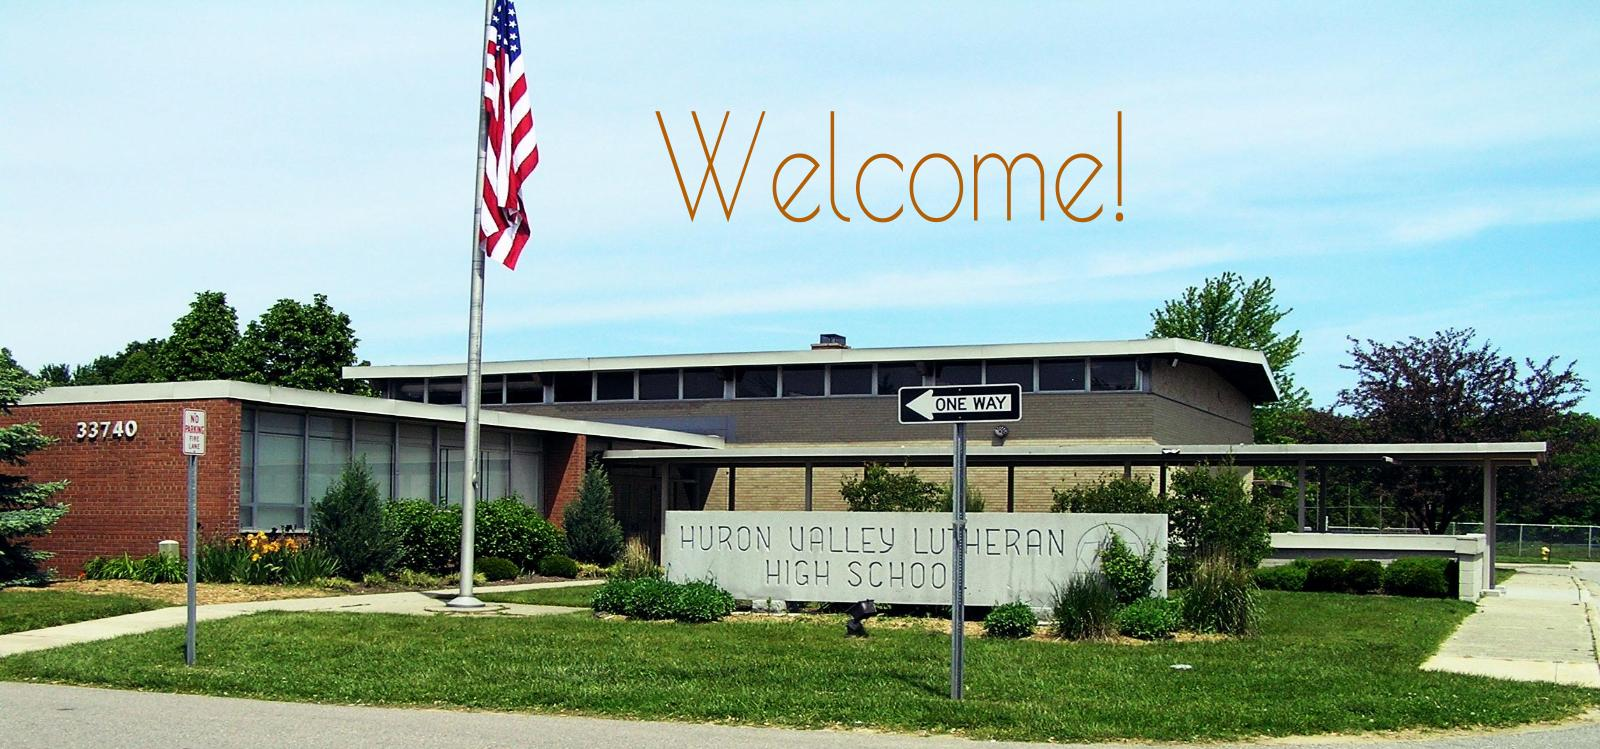 <div class='slider_caption'> <h1>Welcome to HVL!</h1> <a class='slider-readmore' href=''>HVL is a nationally accredited school through the National Counsel for Private School Accreditation</a> </div>